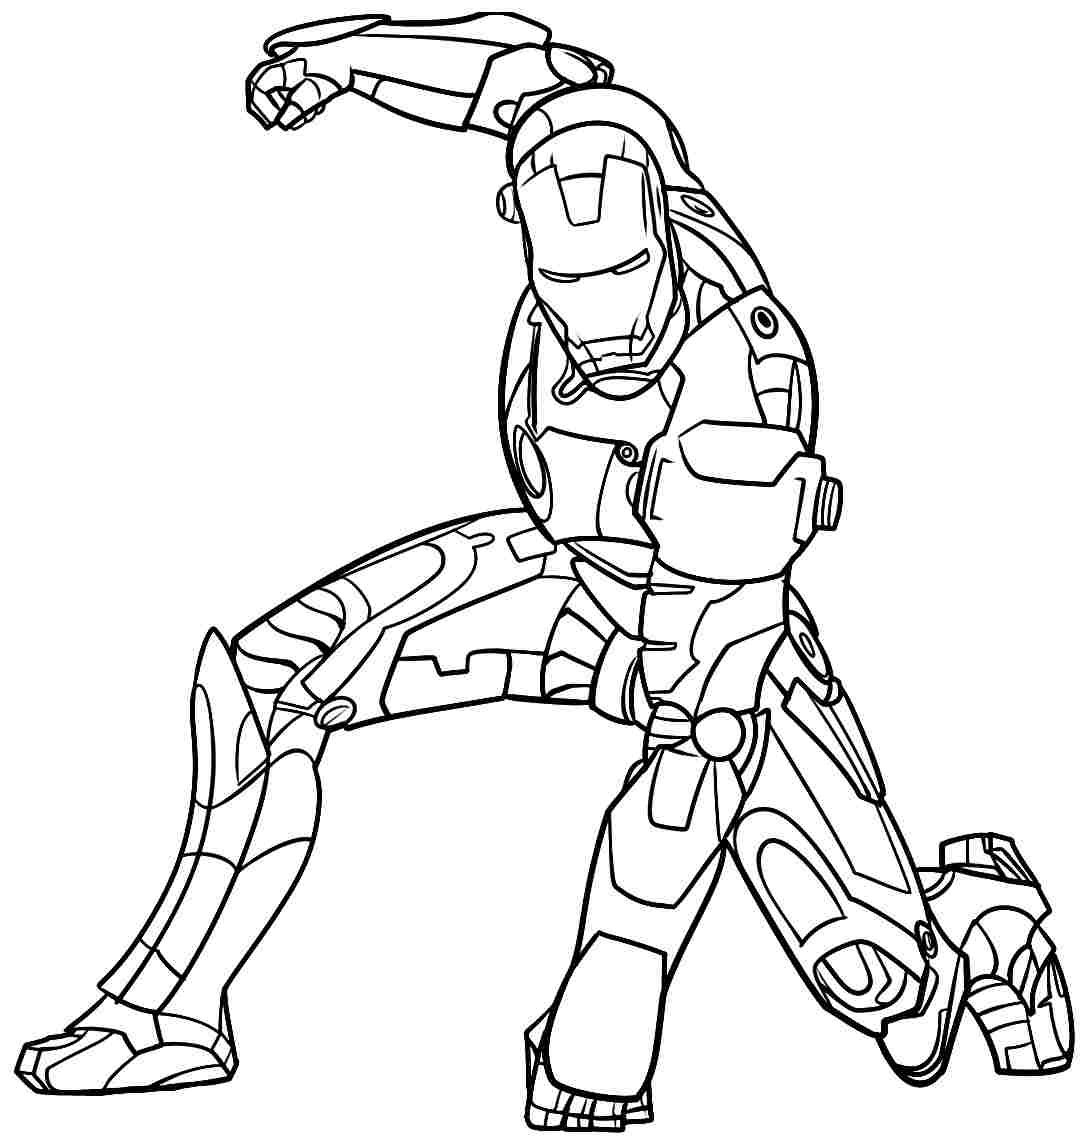 Iron Man Coloring Pages Printable - Coloring Pages | superhero ...